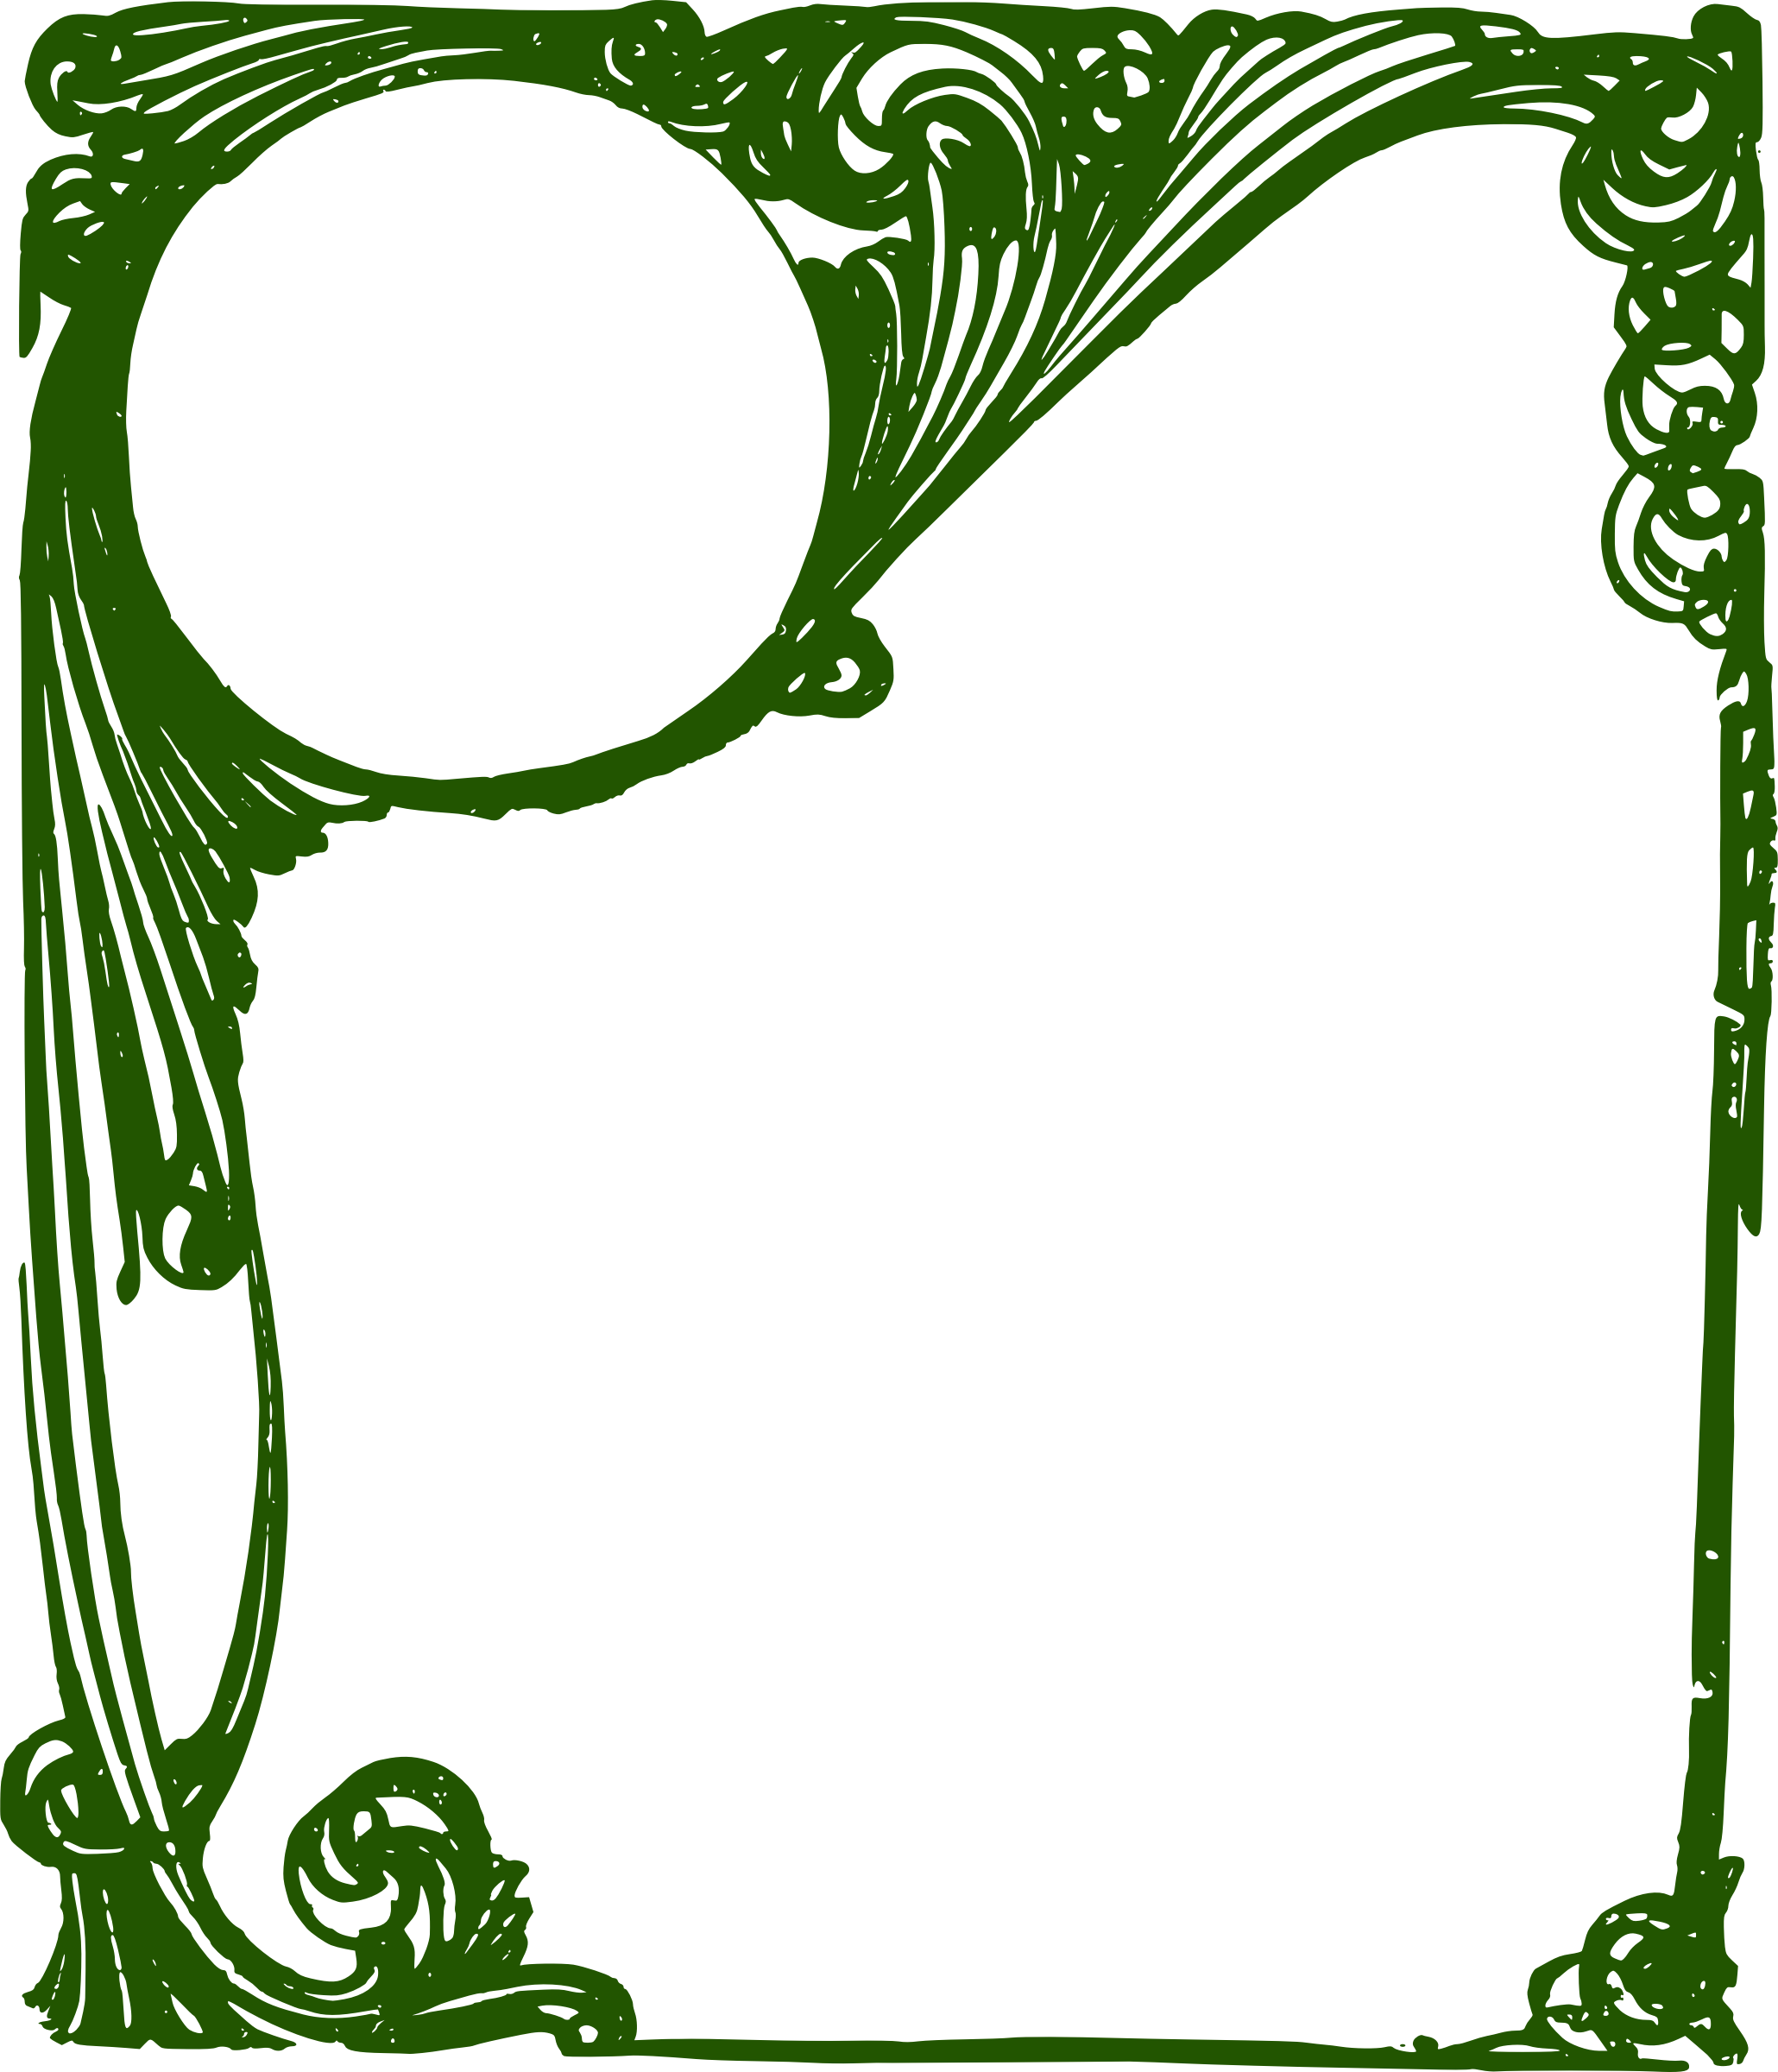 Frame clipart green. Curly big image png